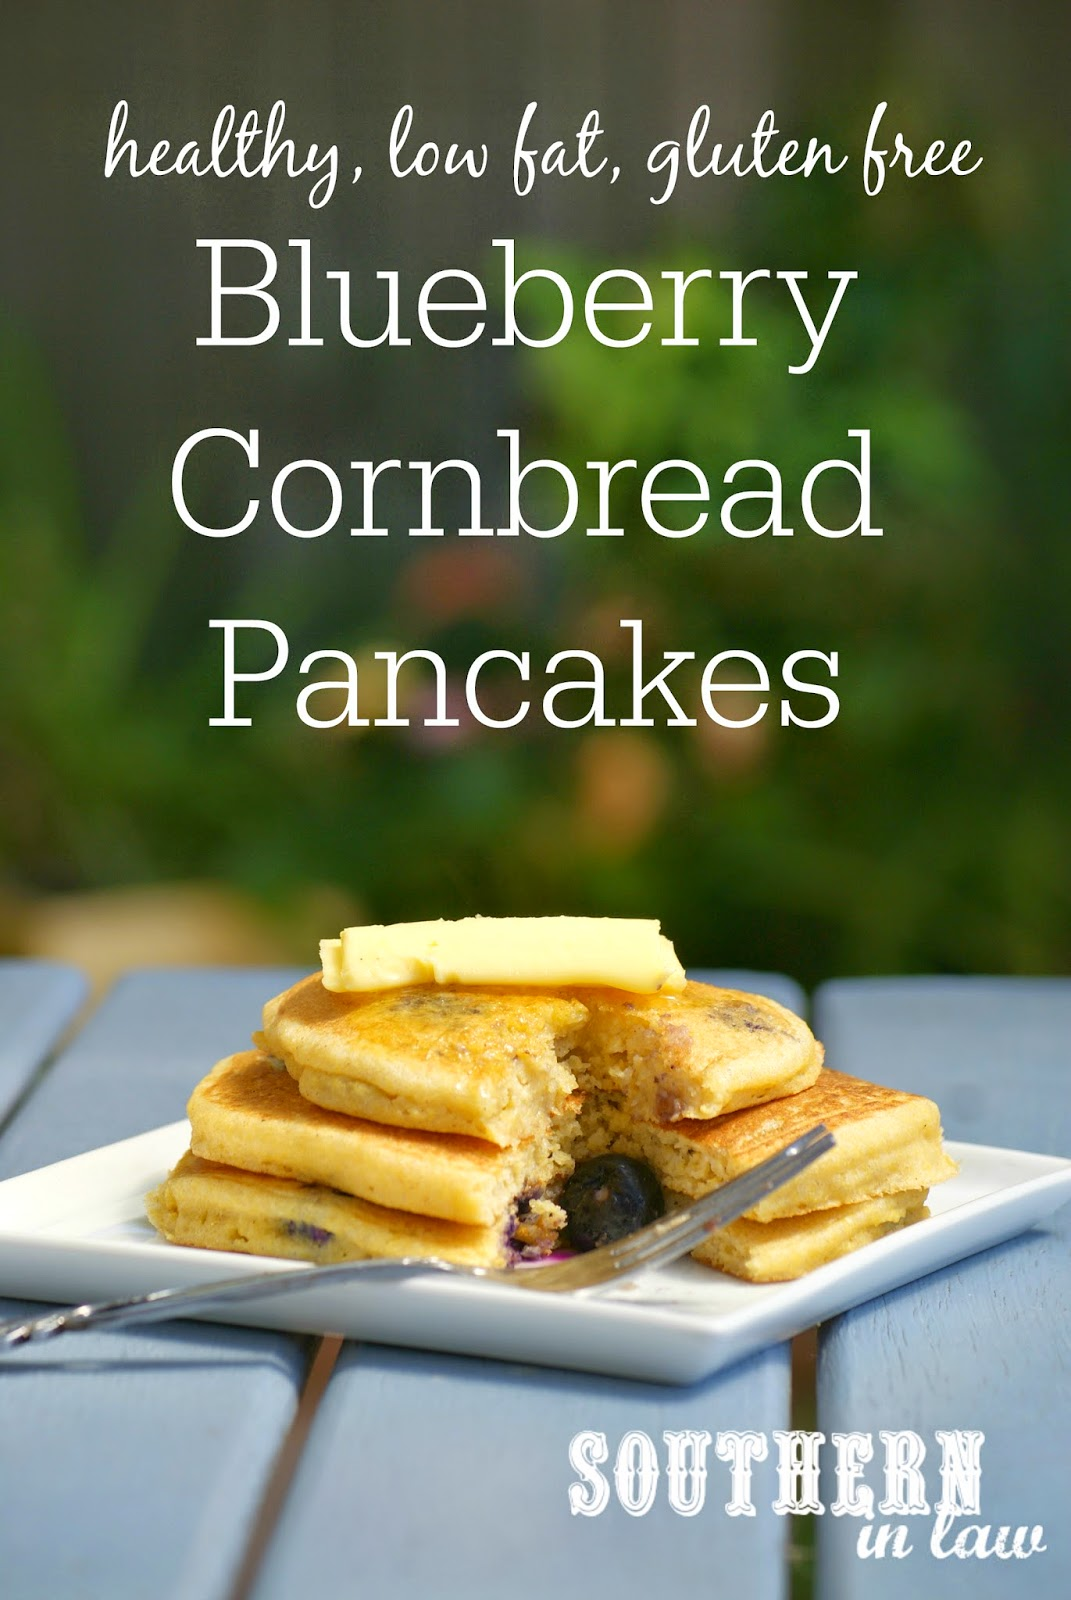 Gluten Free Blueberry Cornbread Pancakes Recipe | gluten free, low fat, healthy, low sugar, clean eating friendly